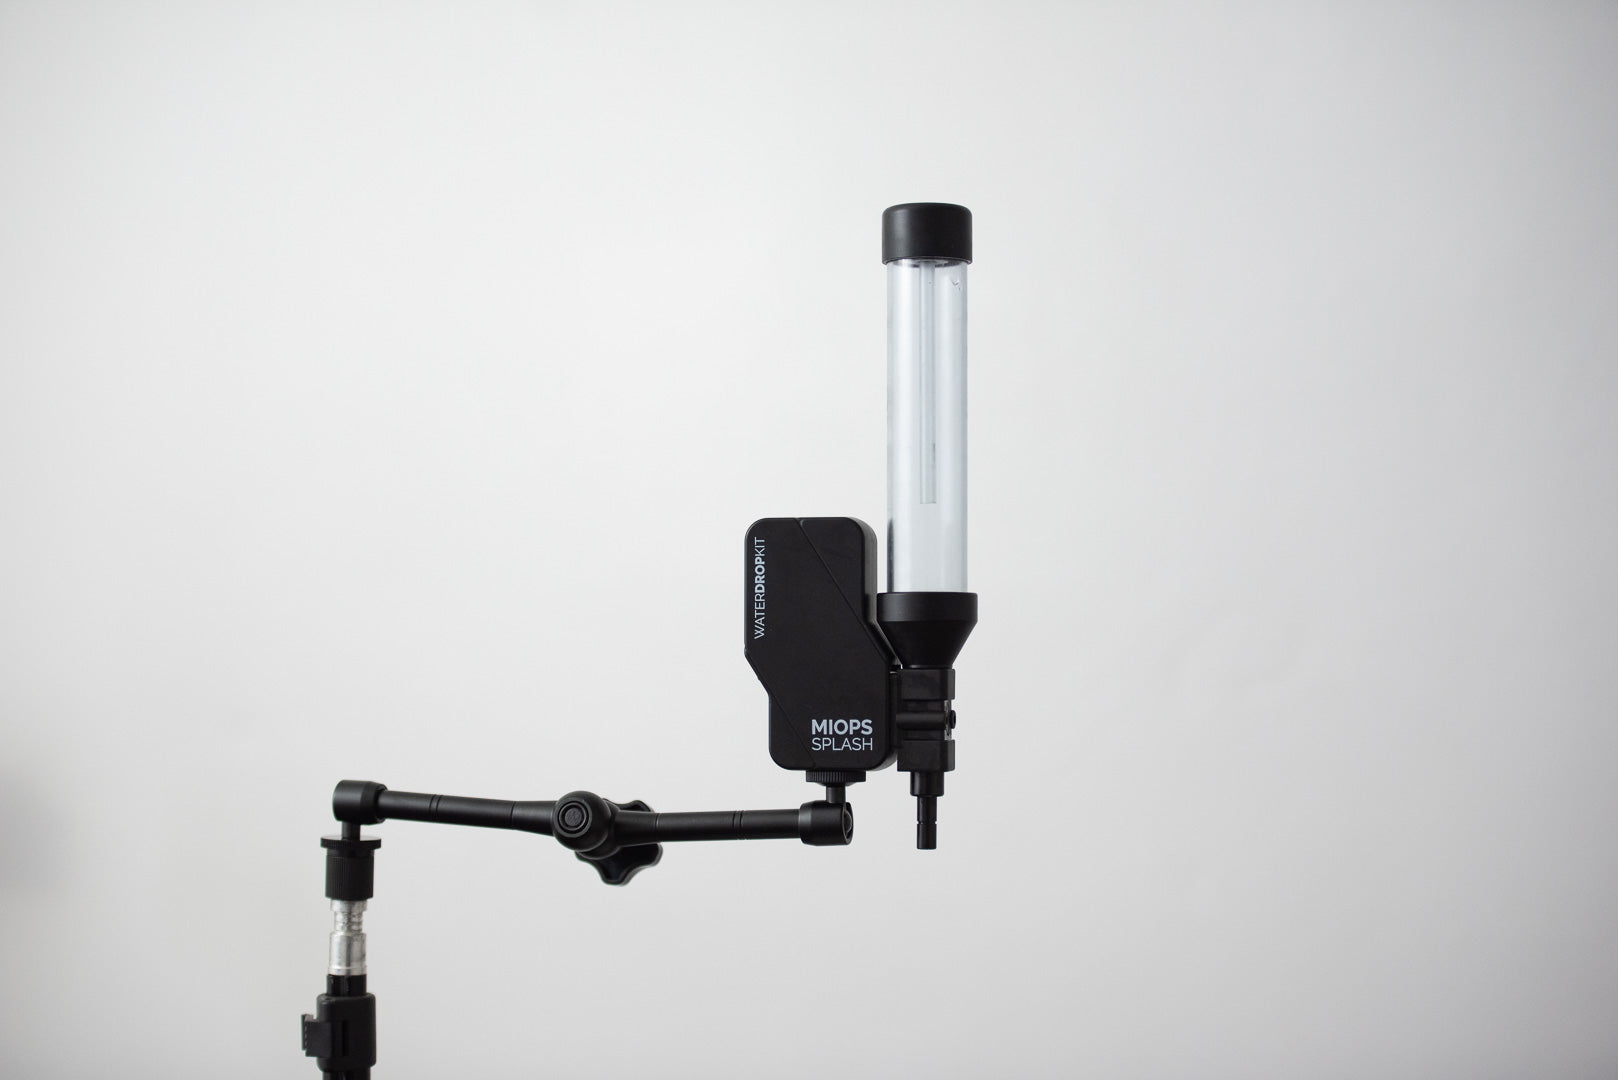 The Splash Water Drop Kit fits to a light stand via the Splash Holder supplied in the box